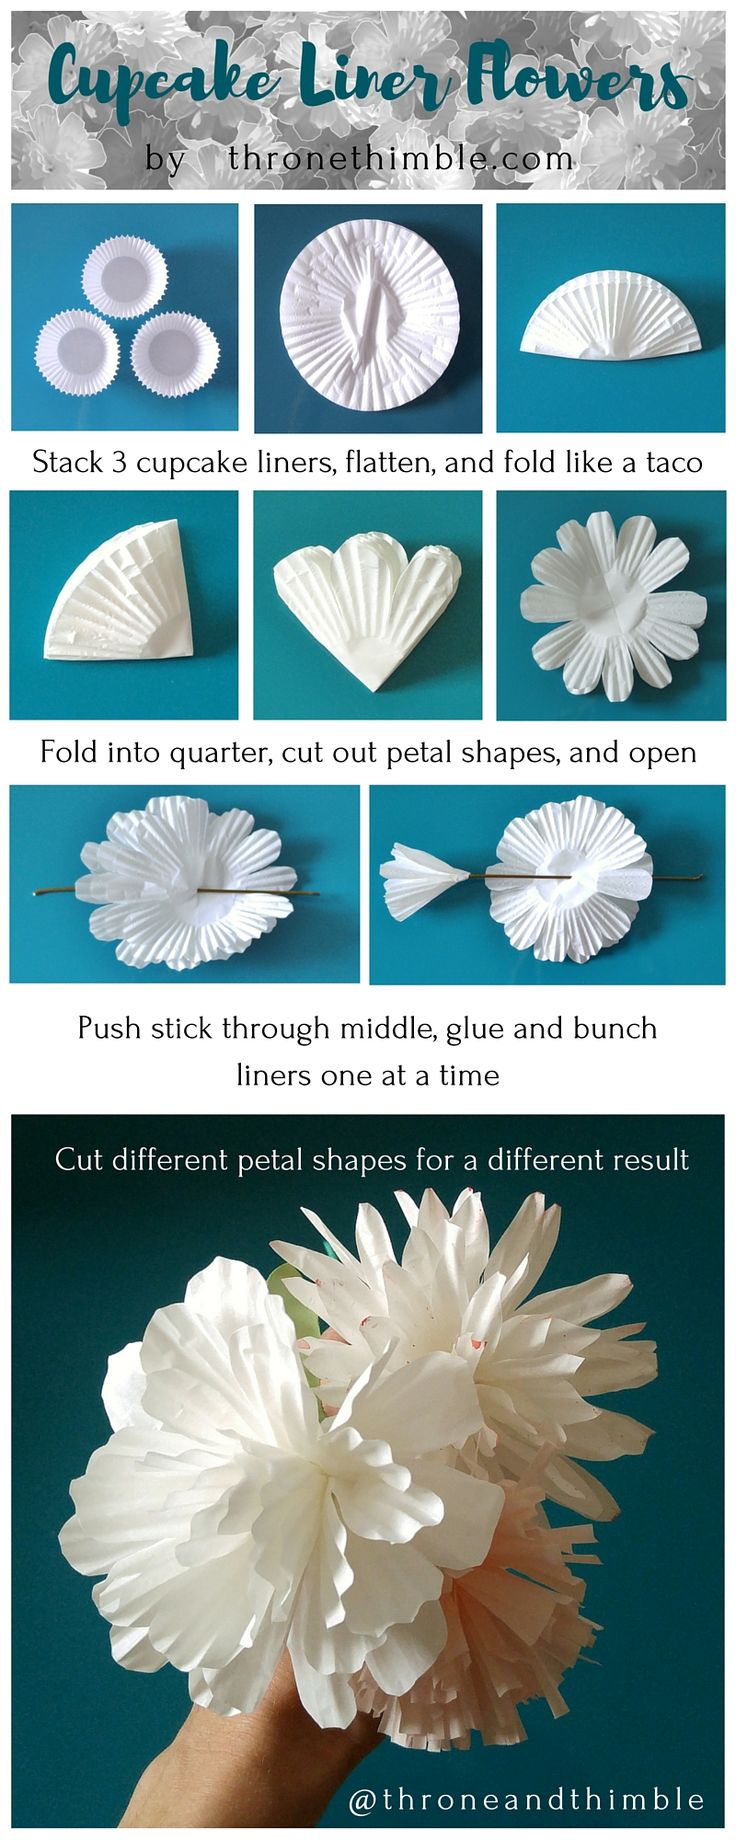 Cupcake Liner Flowers- instructional pin